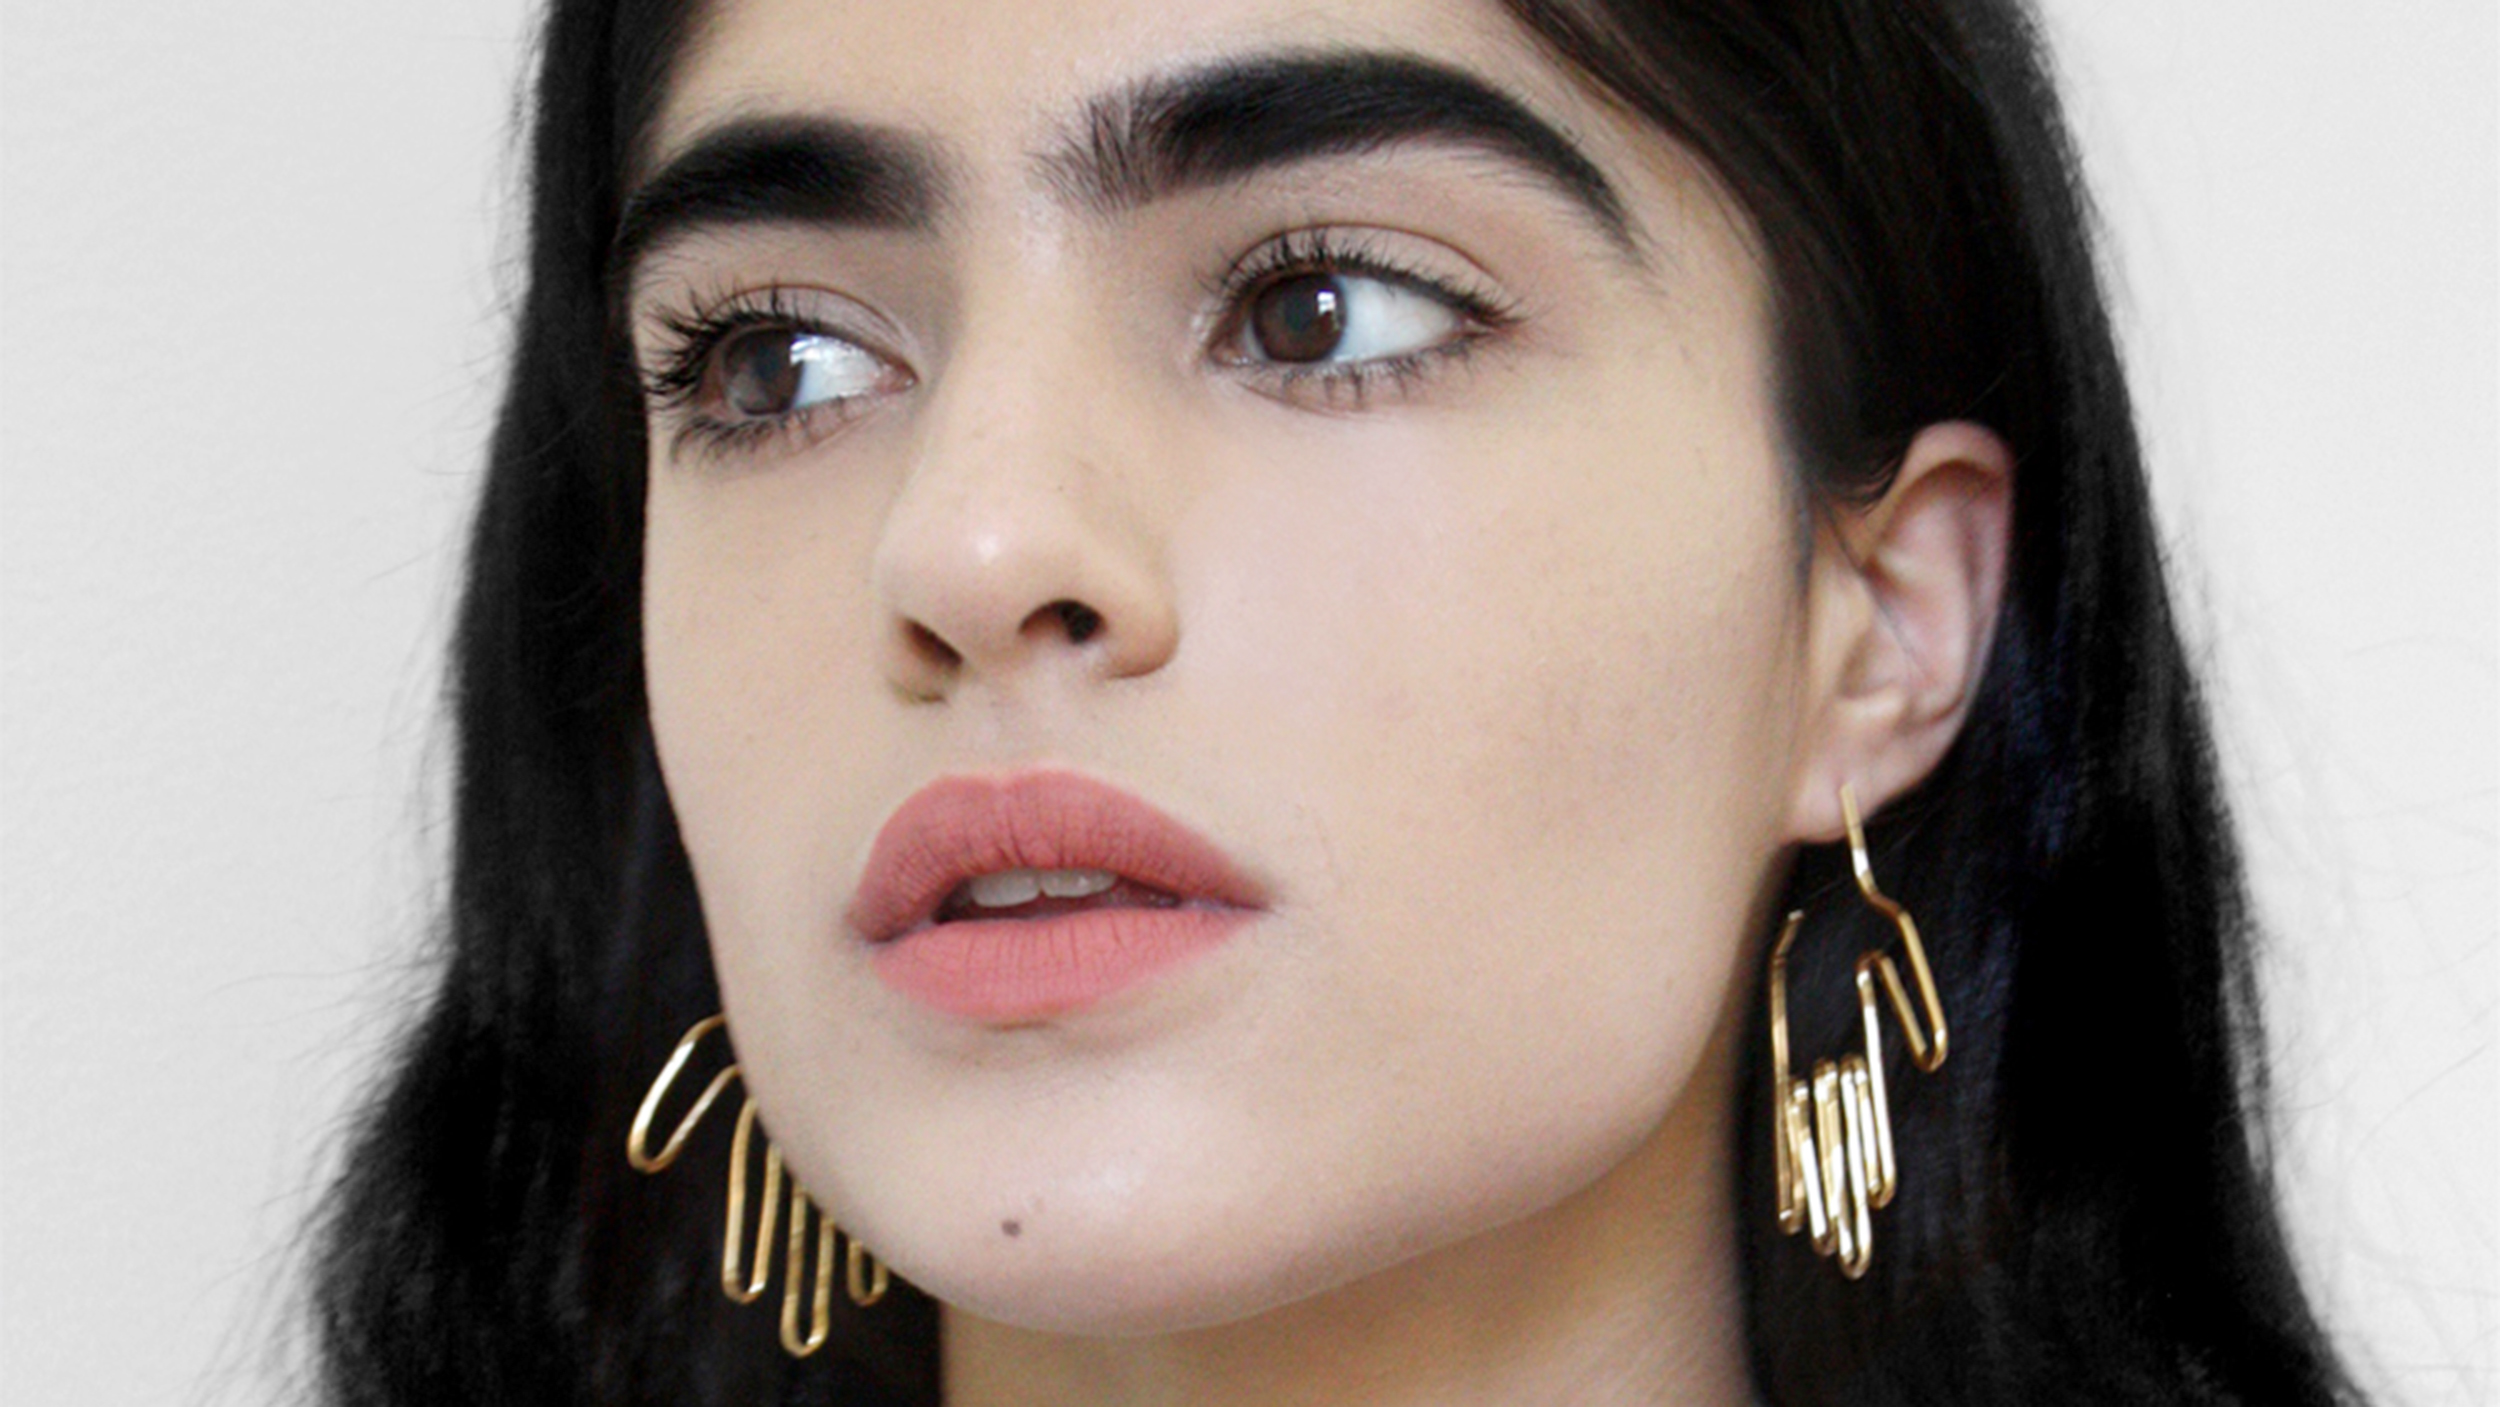 Model Natalia Castellar Calvani On Learning To Love Her Bold Eyebrows